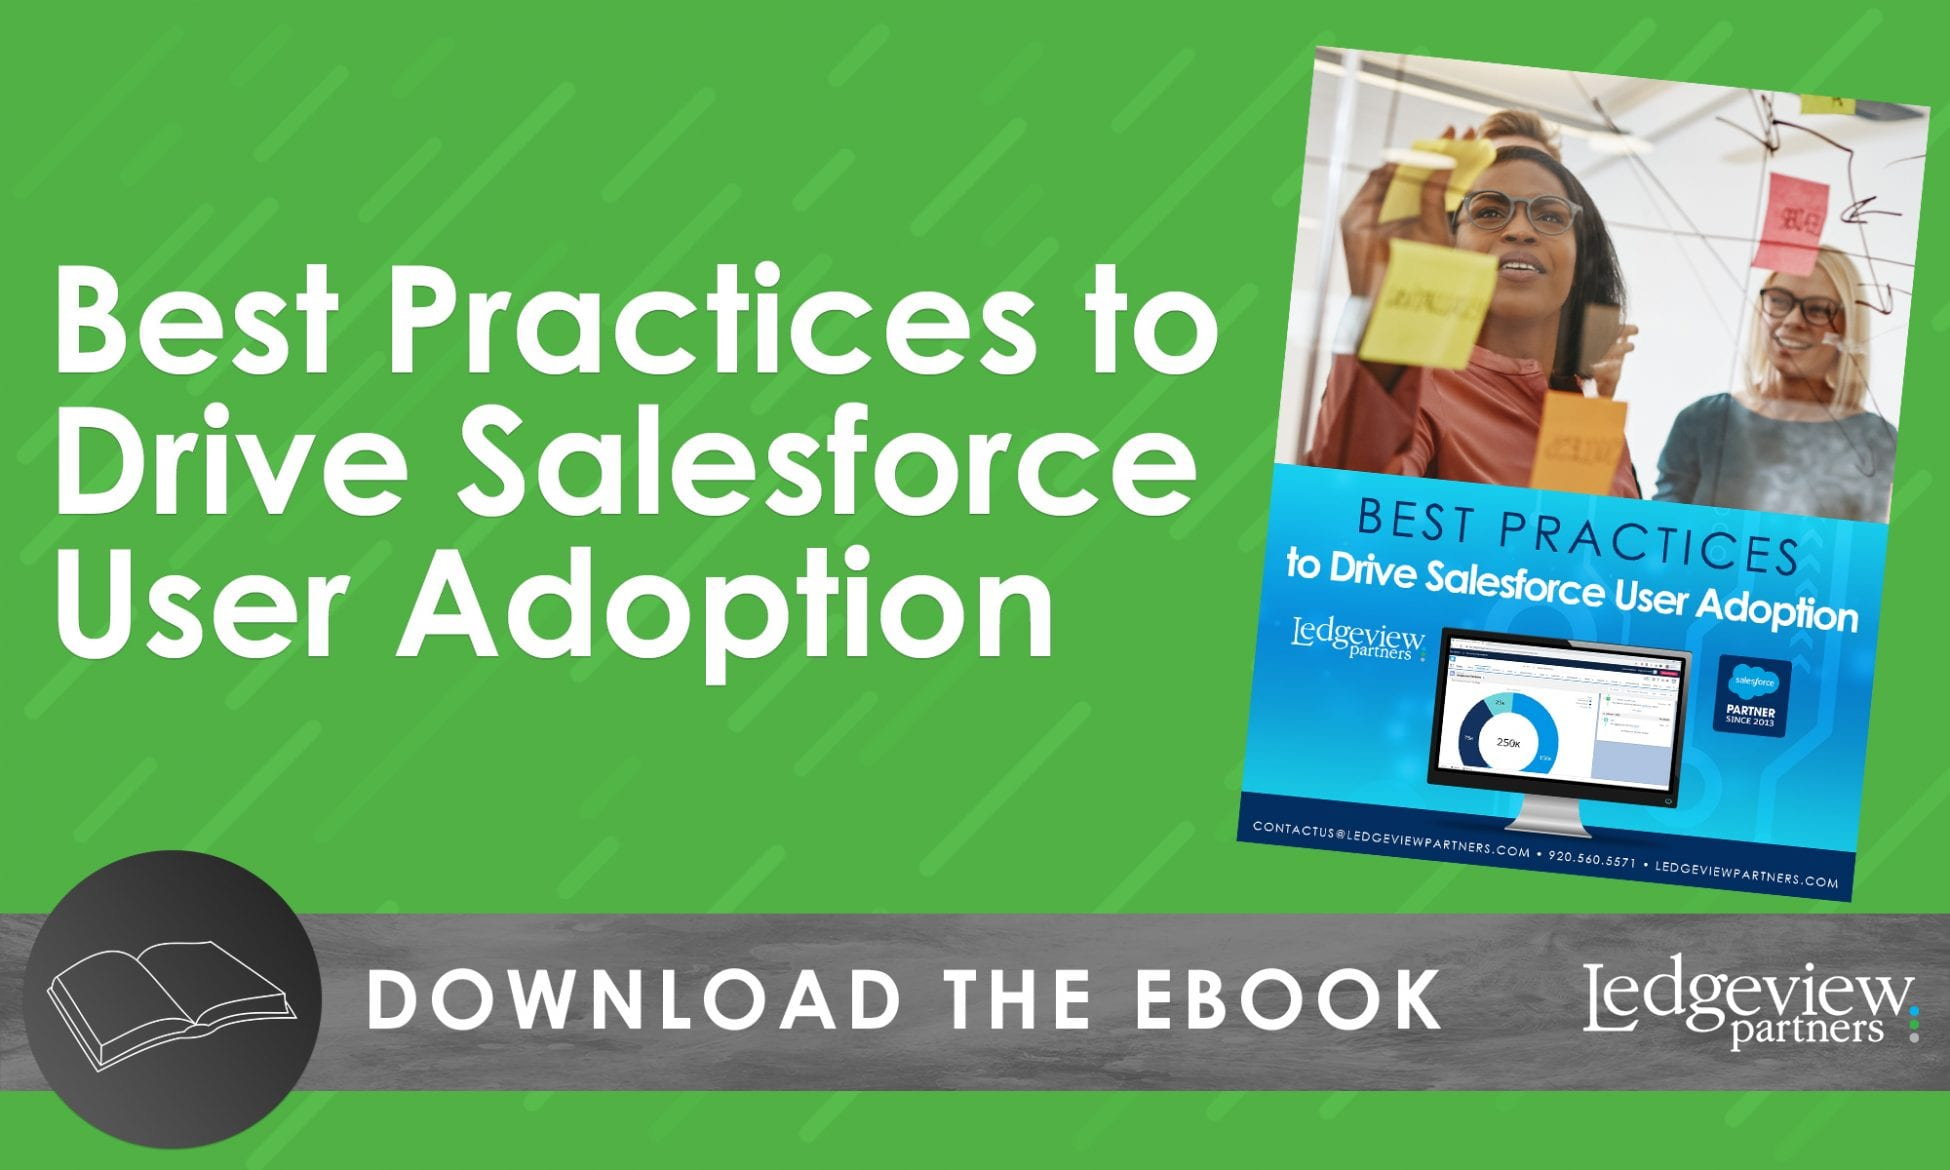 eBook: Best Practices to Drive Salesforce User Adoption